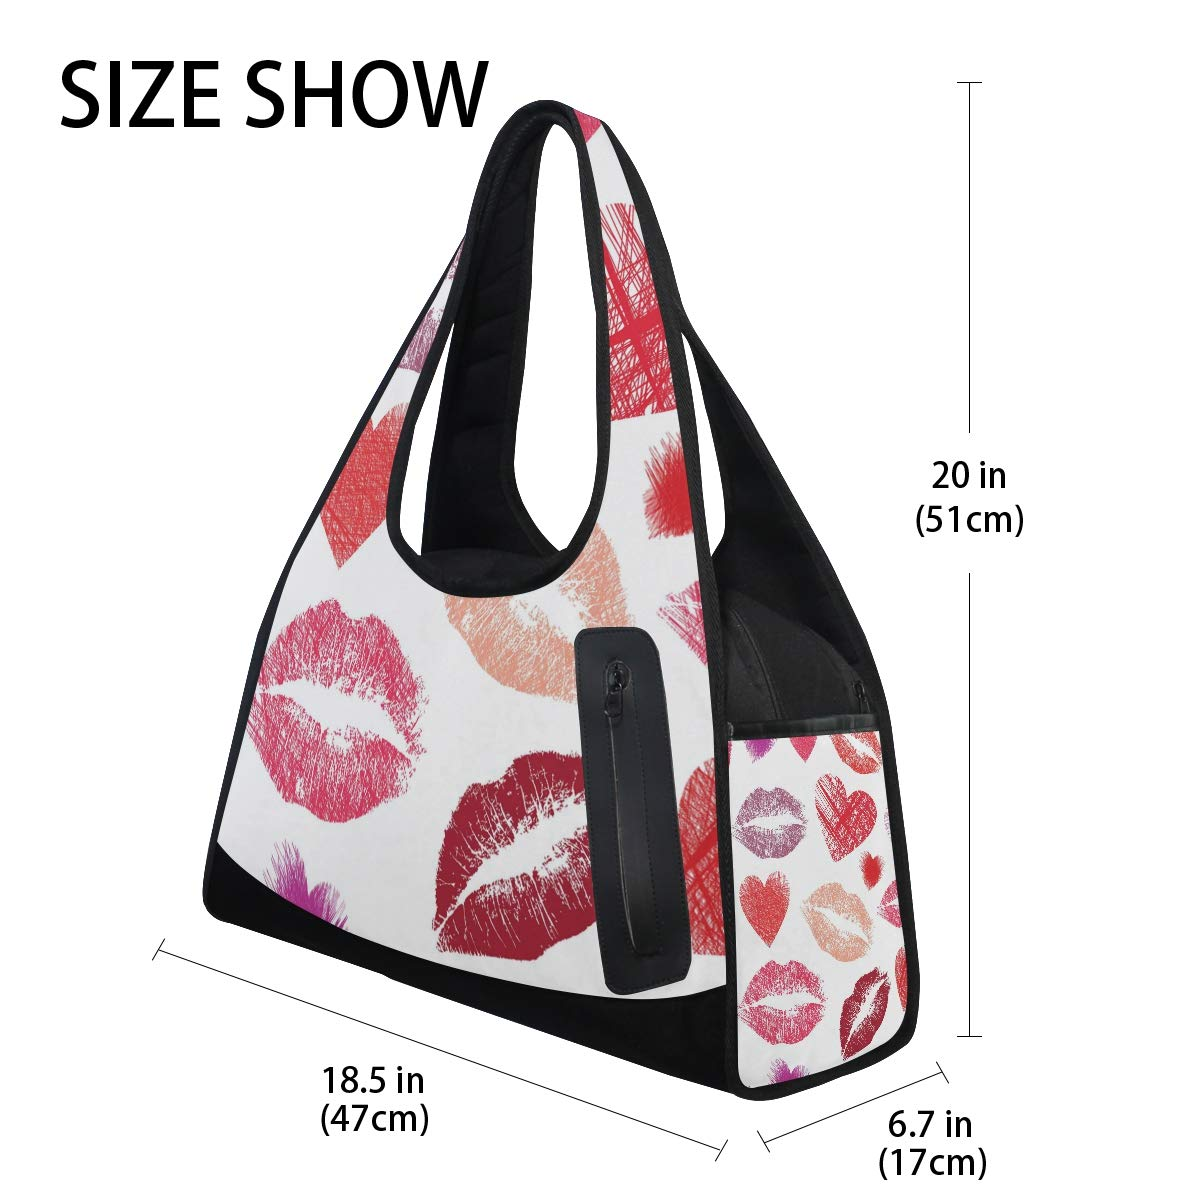 Unisex Travel Duffels Gym Bag Watercolor Lip Heart Canvas Weekender Bag Shoulder Bag Totes bags